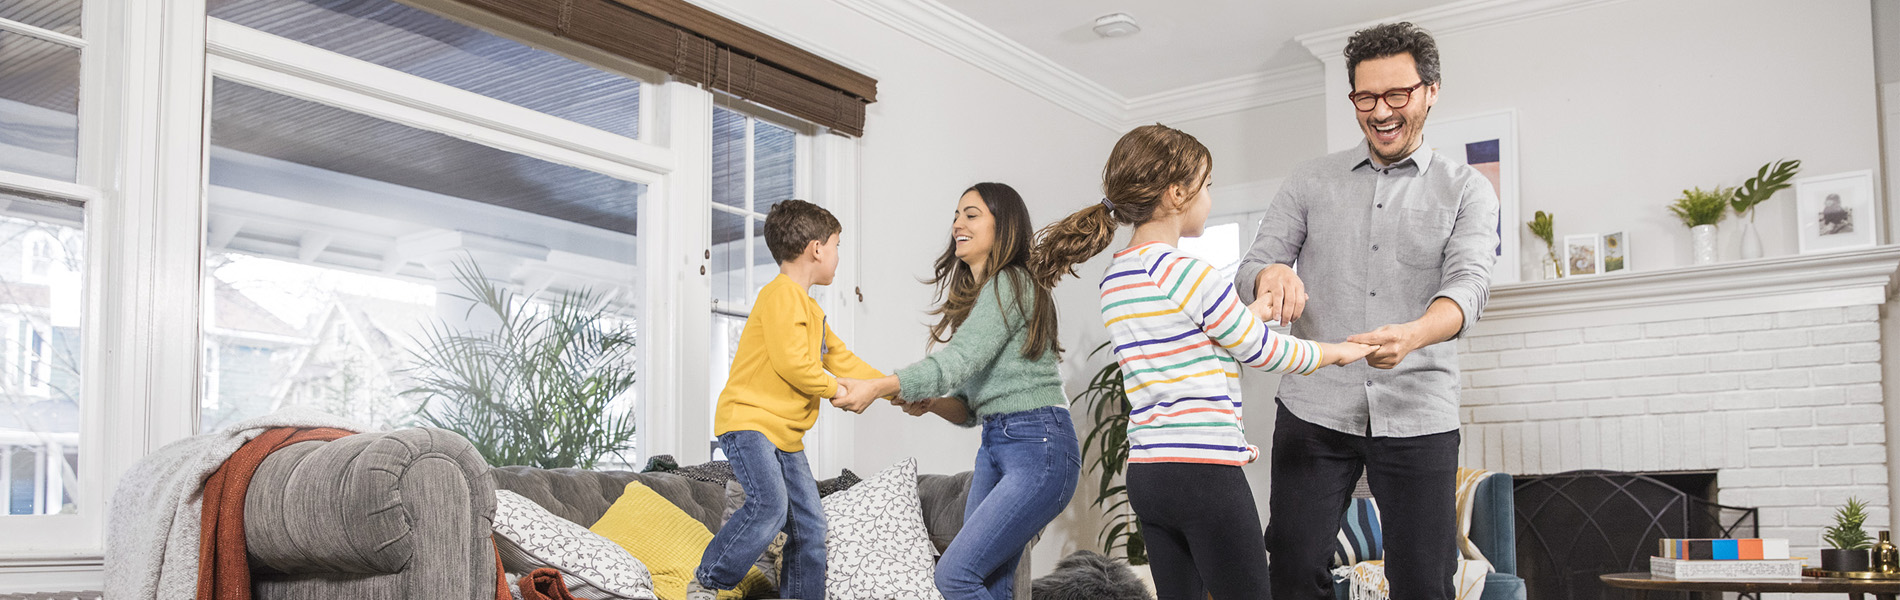 Family Room Couple With Children